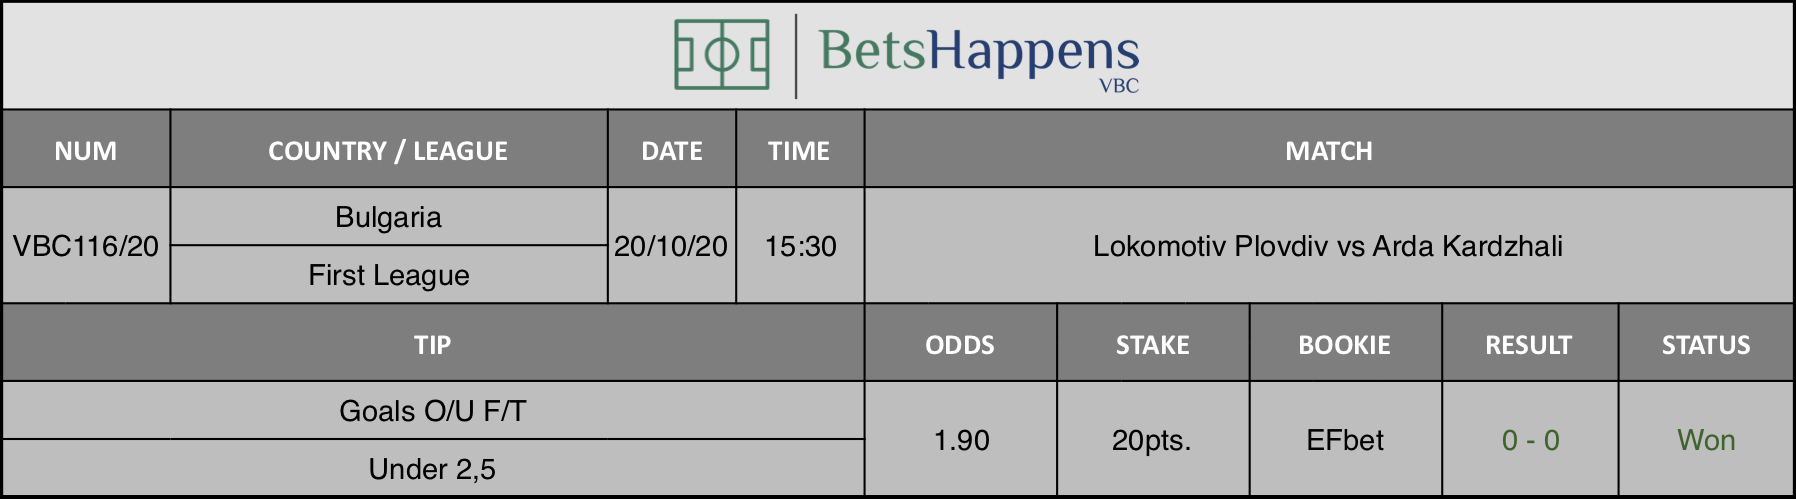 Results of our advice for the Lokomotiv Plovdiv vs Arda Kardzhali match in which Goals O / U F / T Under 2,5 is recommended.